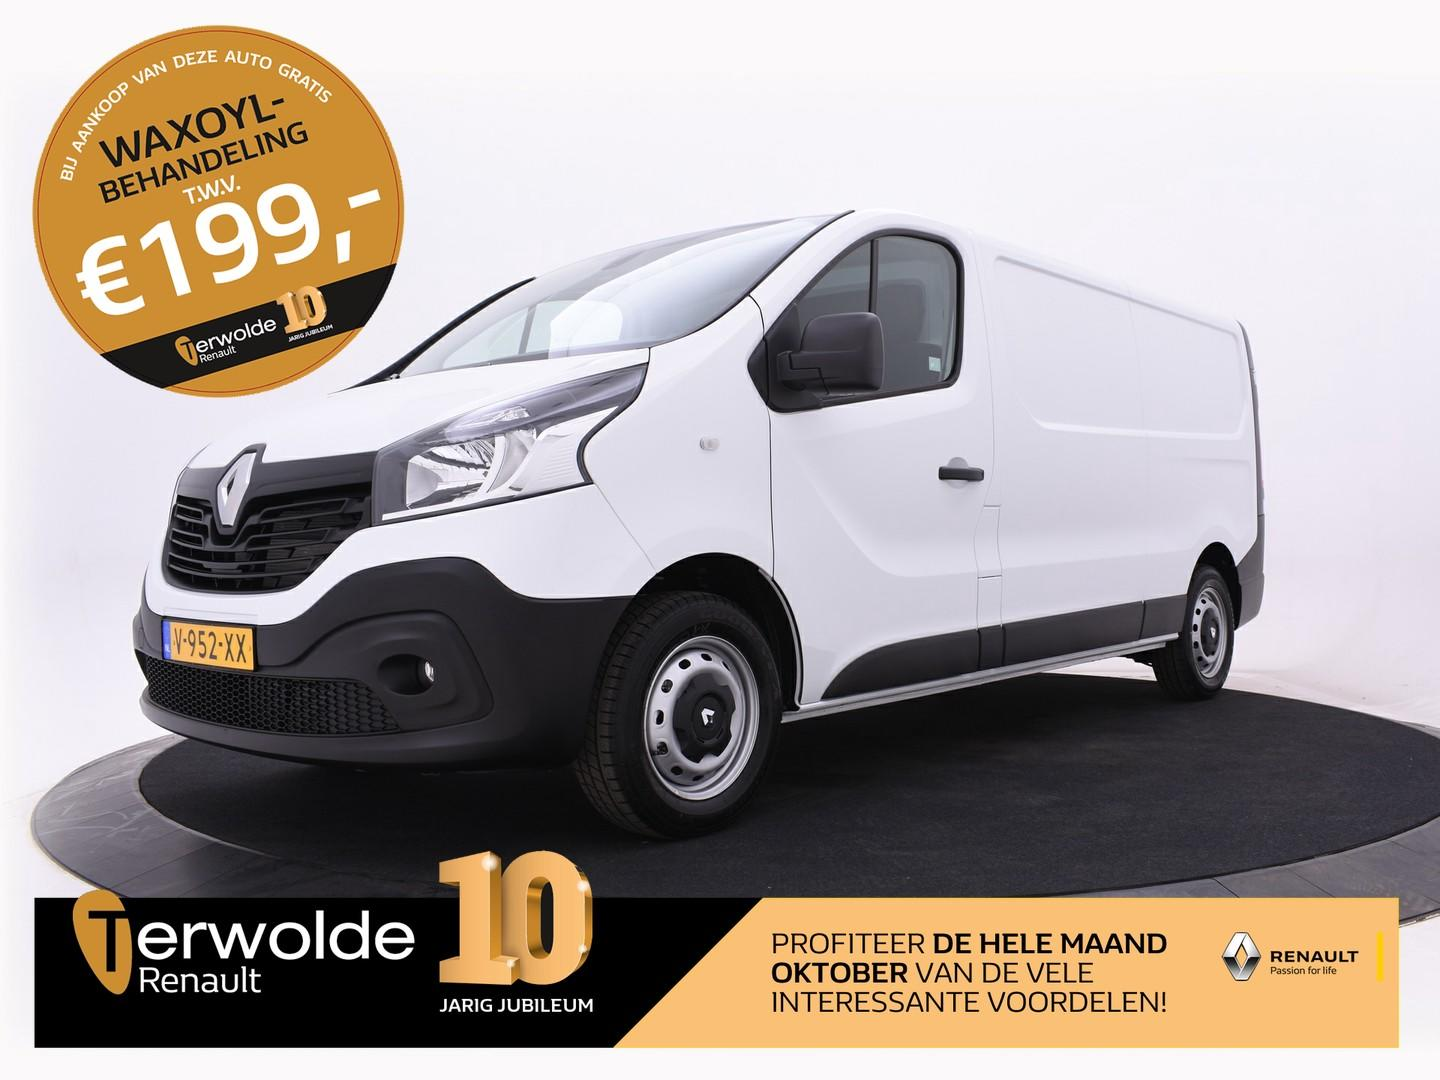 Renault Trafic 1.6 dci 120pk t29 l2h1 comfort airco i cruise control i betimmering